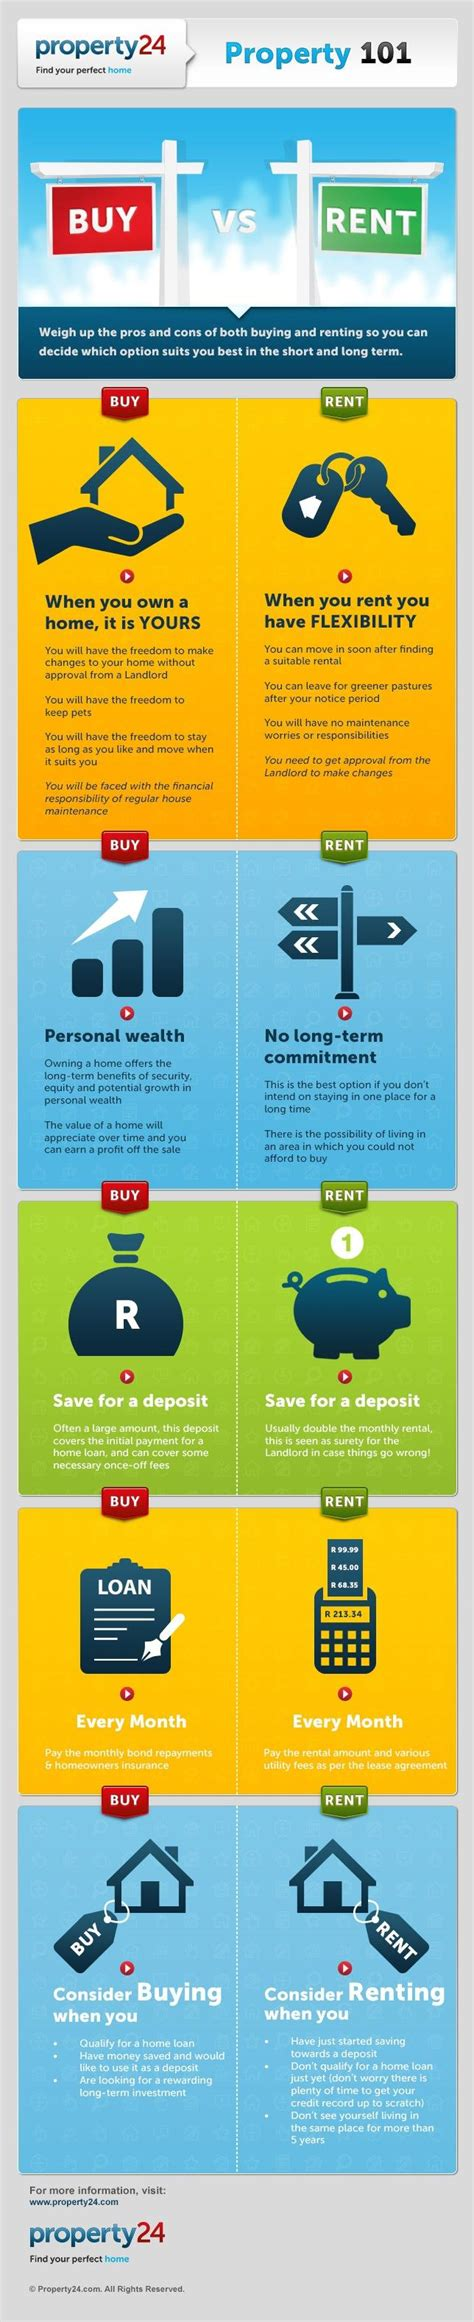 renting vs buying real estate in miami facts calculations rent vs buy a home infographic useful facts rent vs